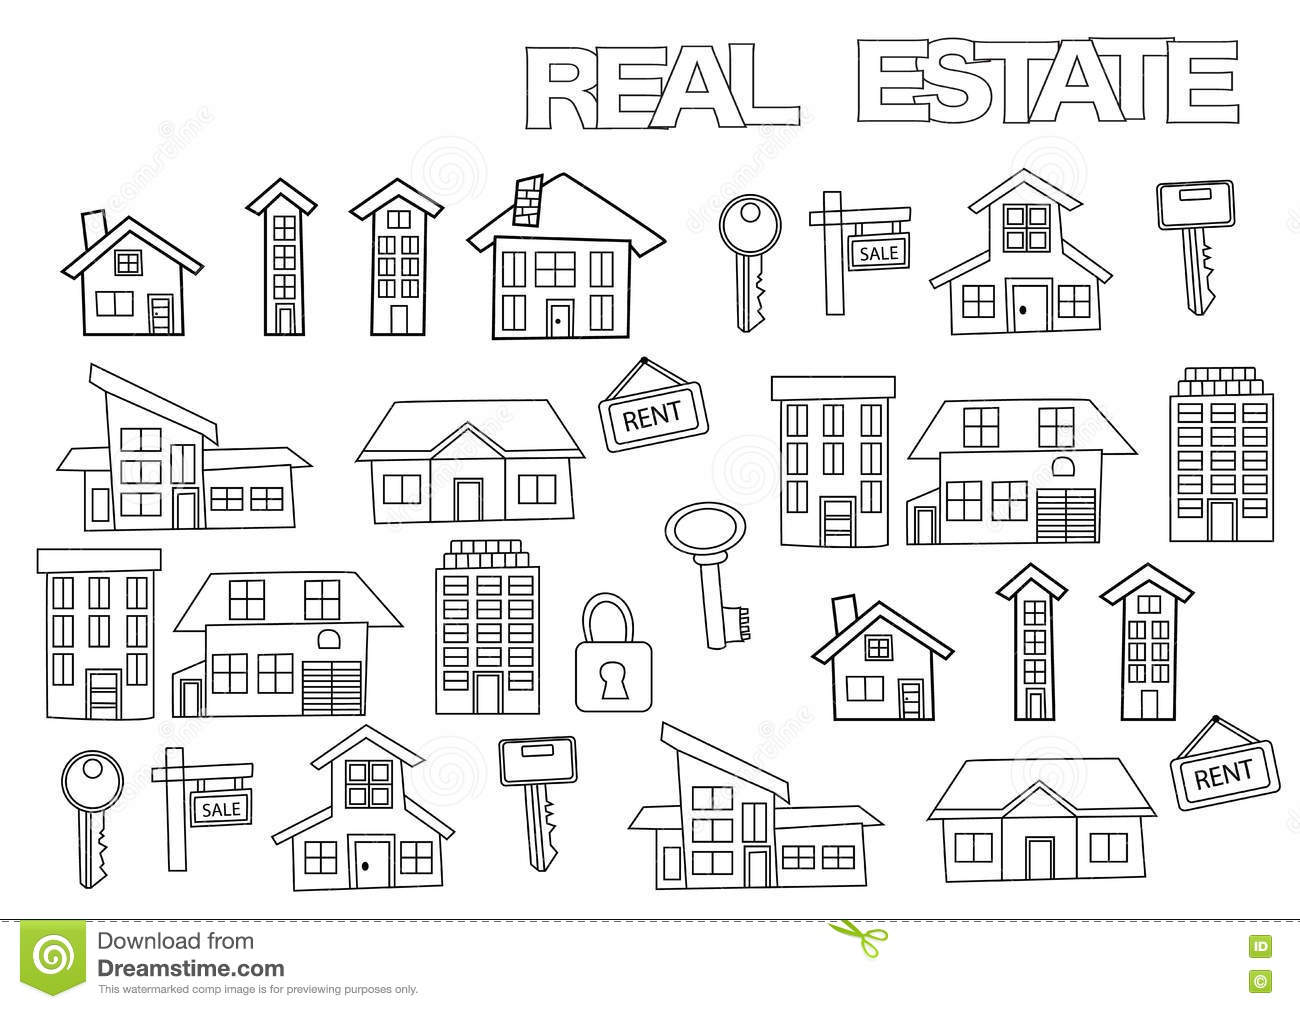 Coloring book real estate - Hand Drawn Real Estate Set Coloring Book Page Template